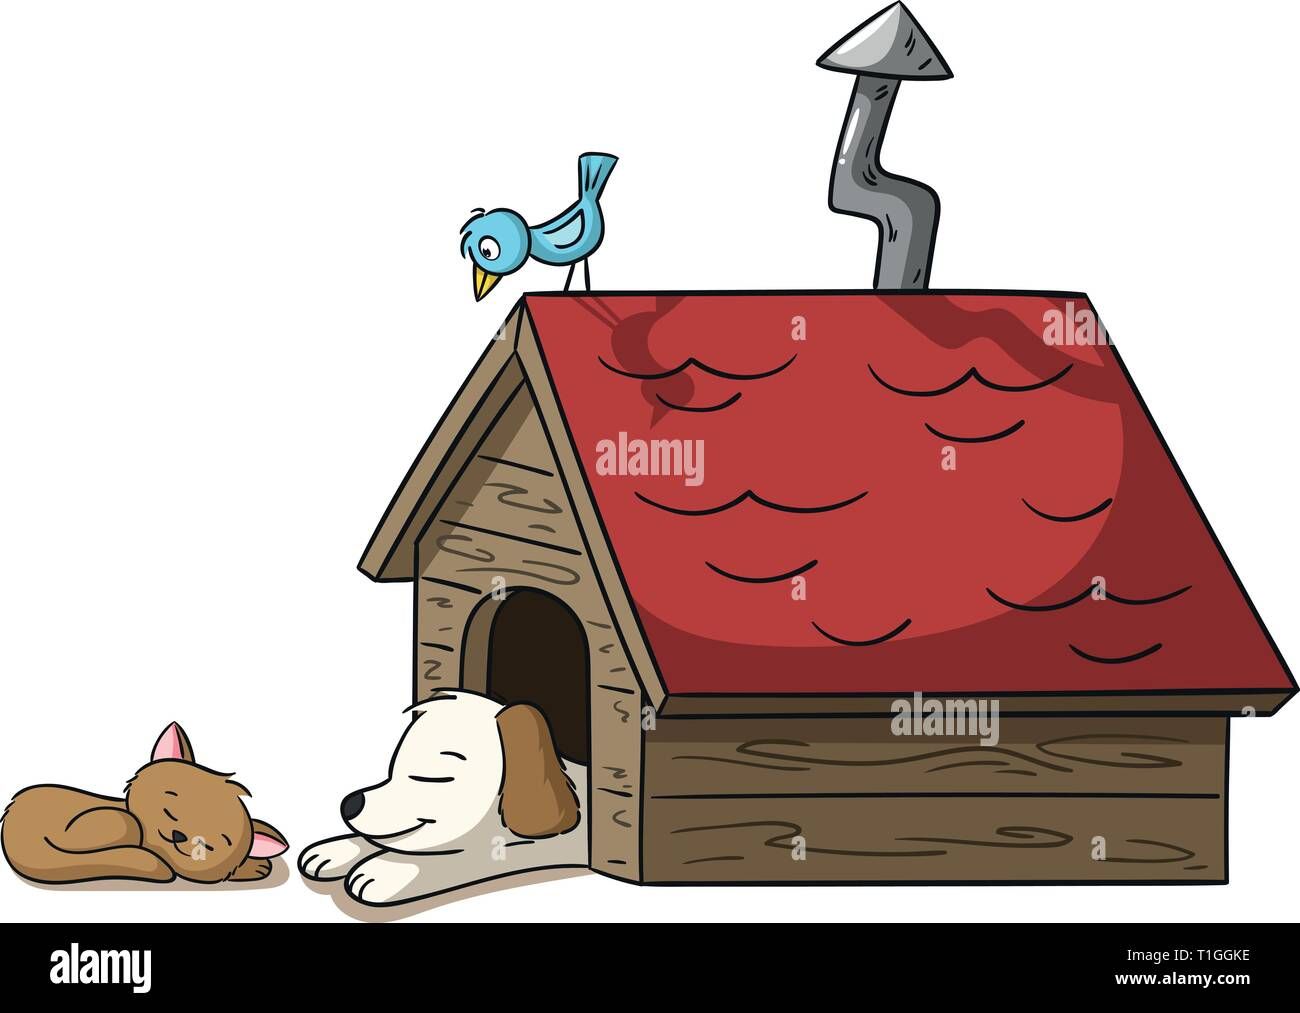 Sleeping cat and dog at a doghouse with bird - Stock Image